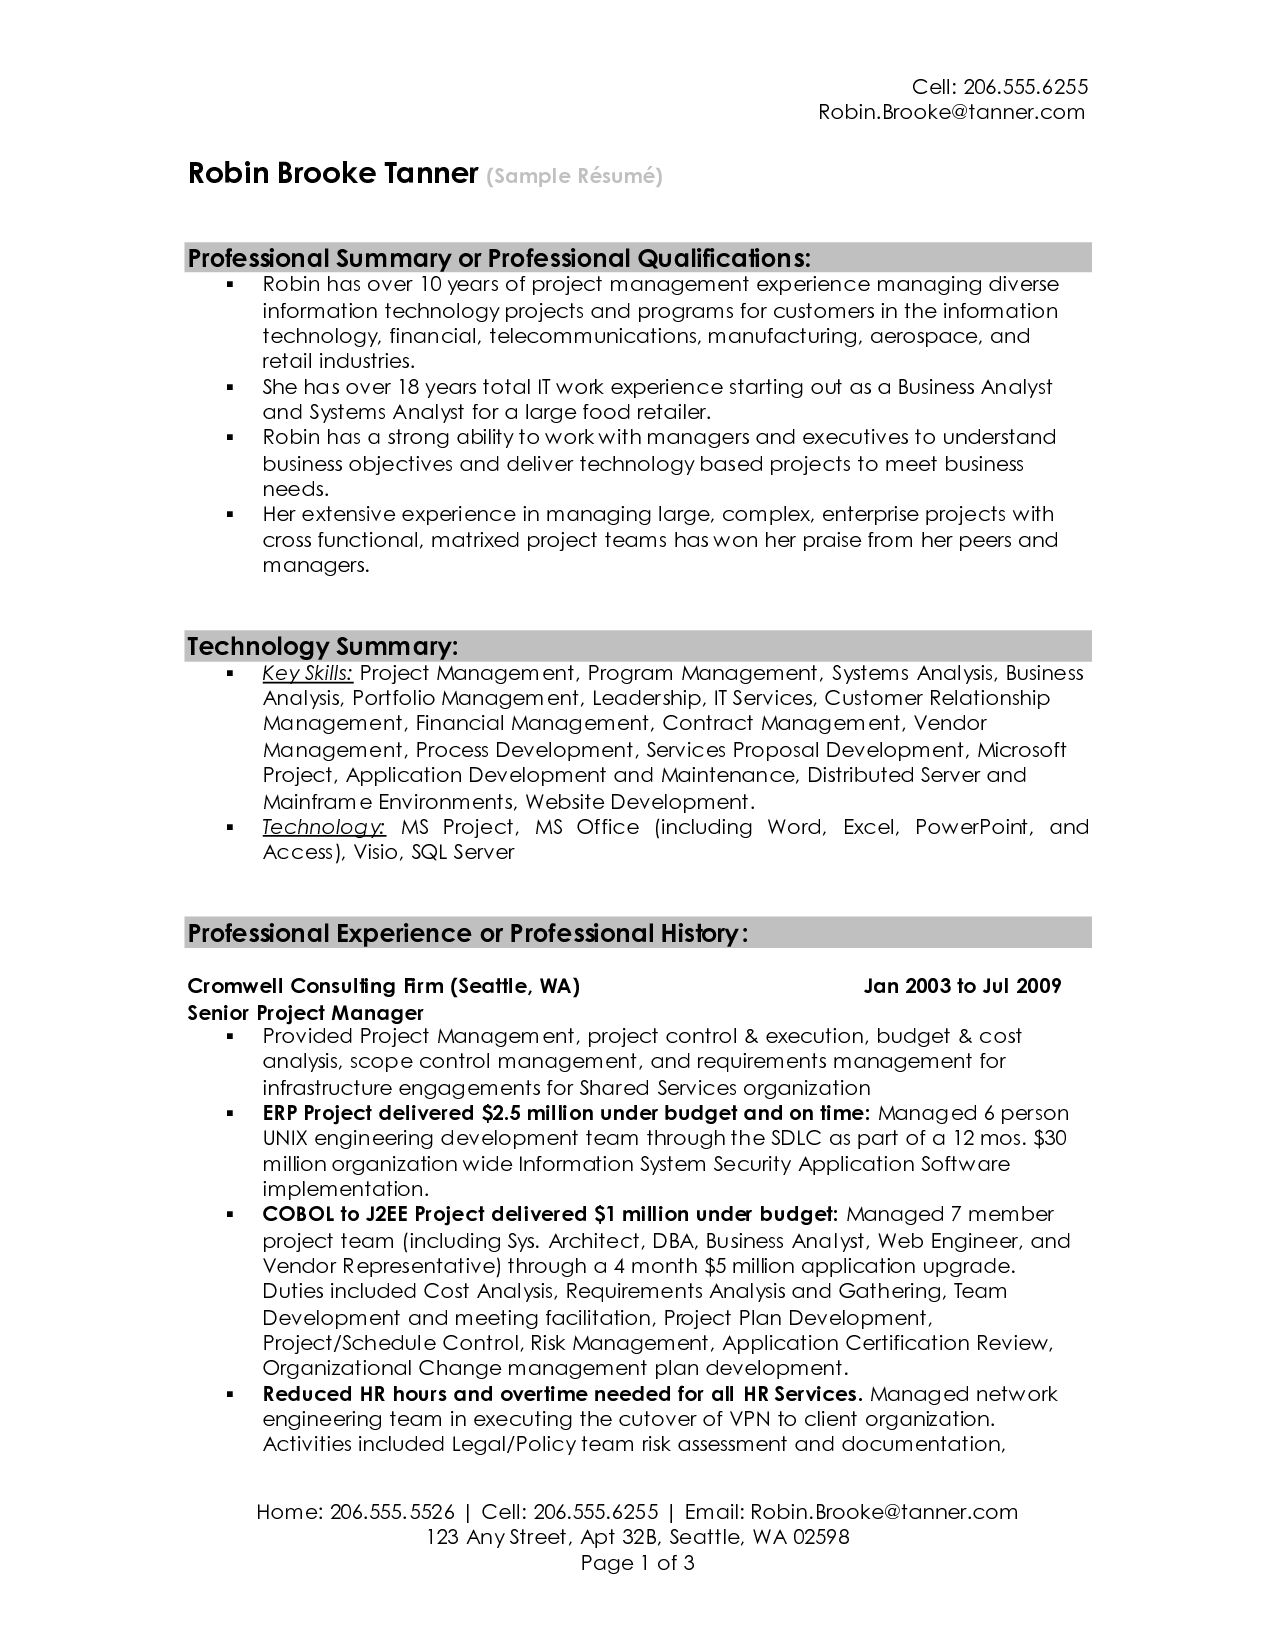 Resume Summary Statements Professional Summary Resume Examples Professional Resume